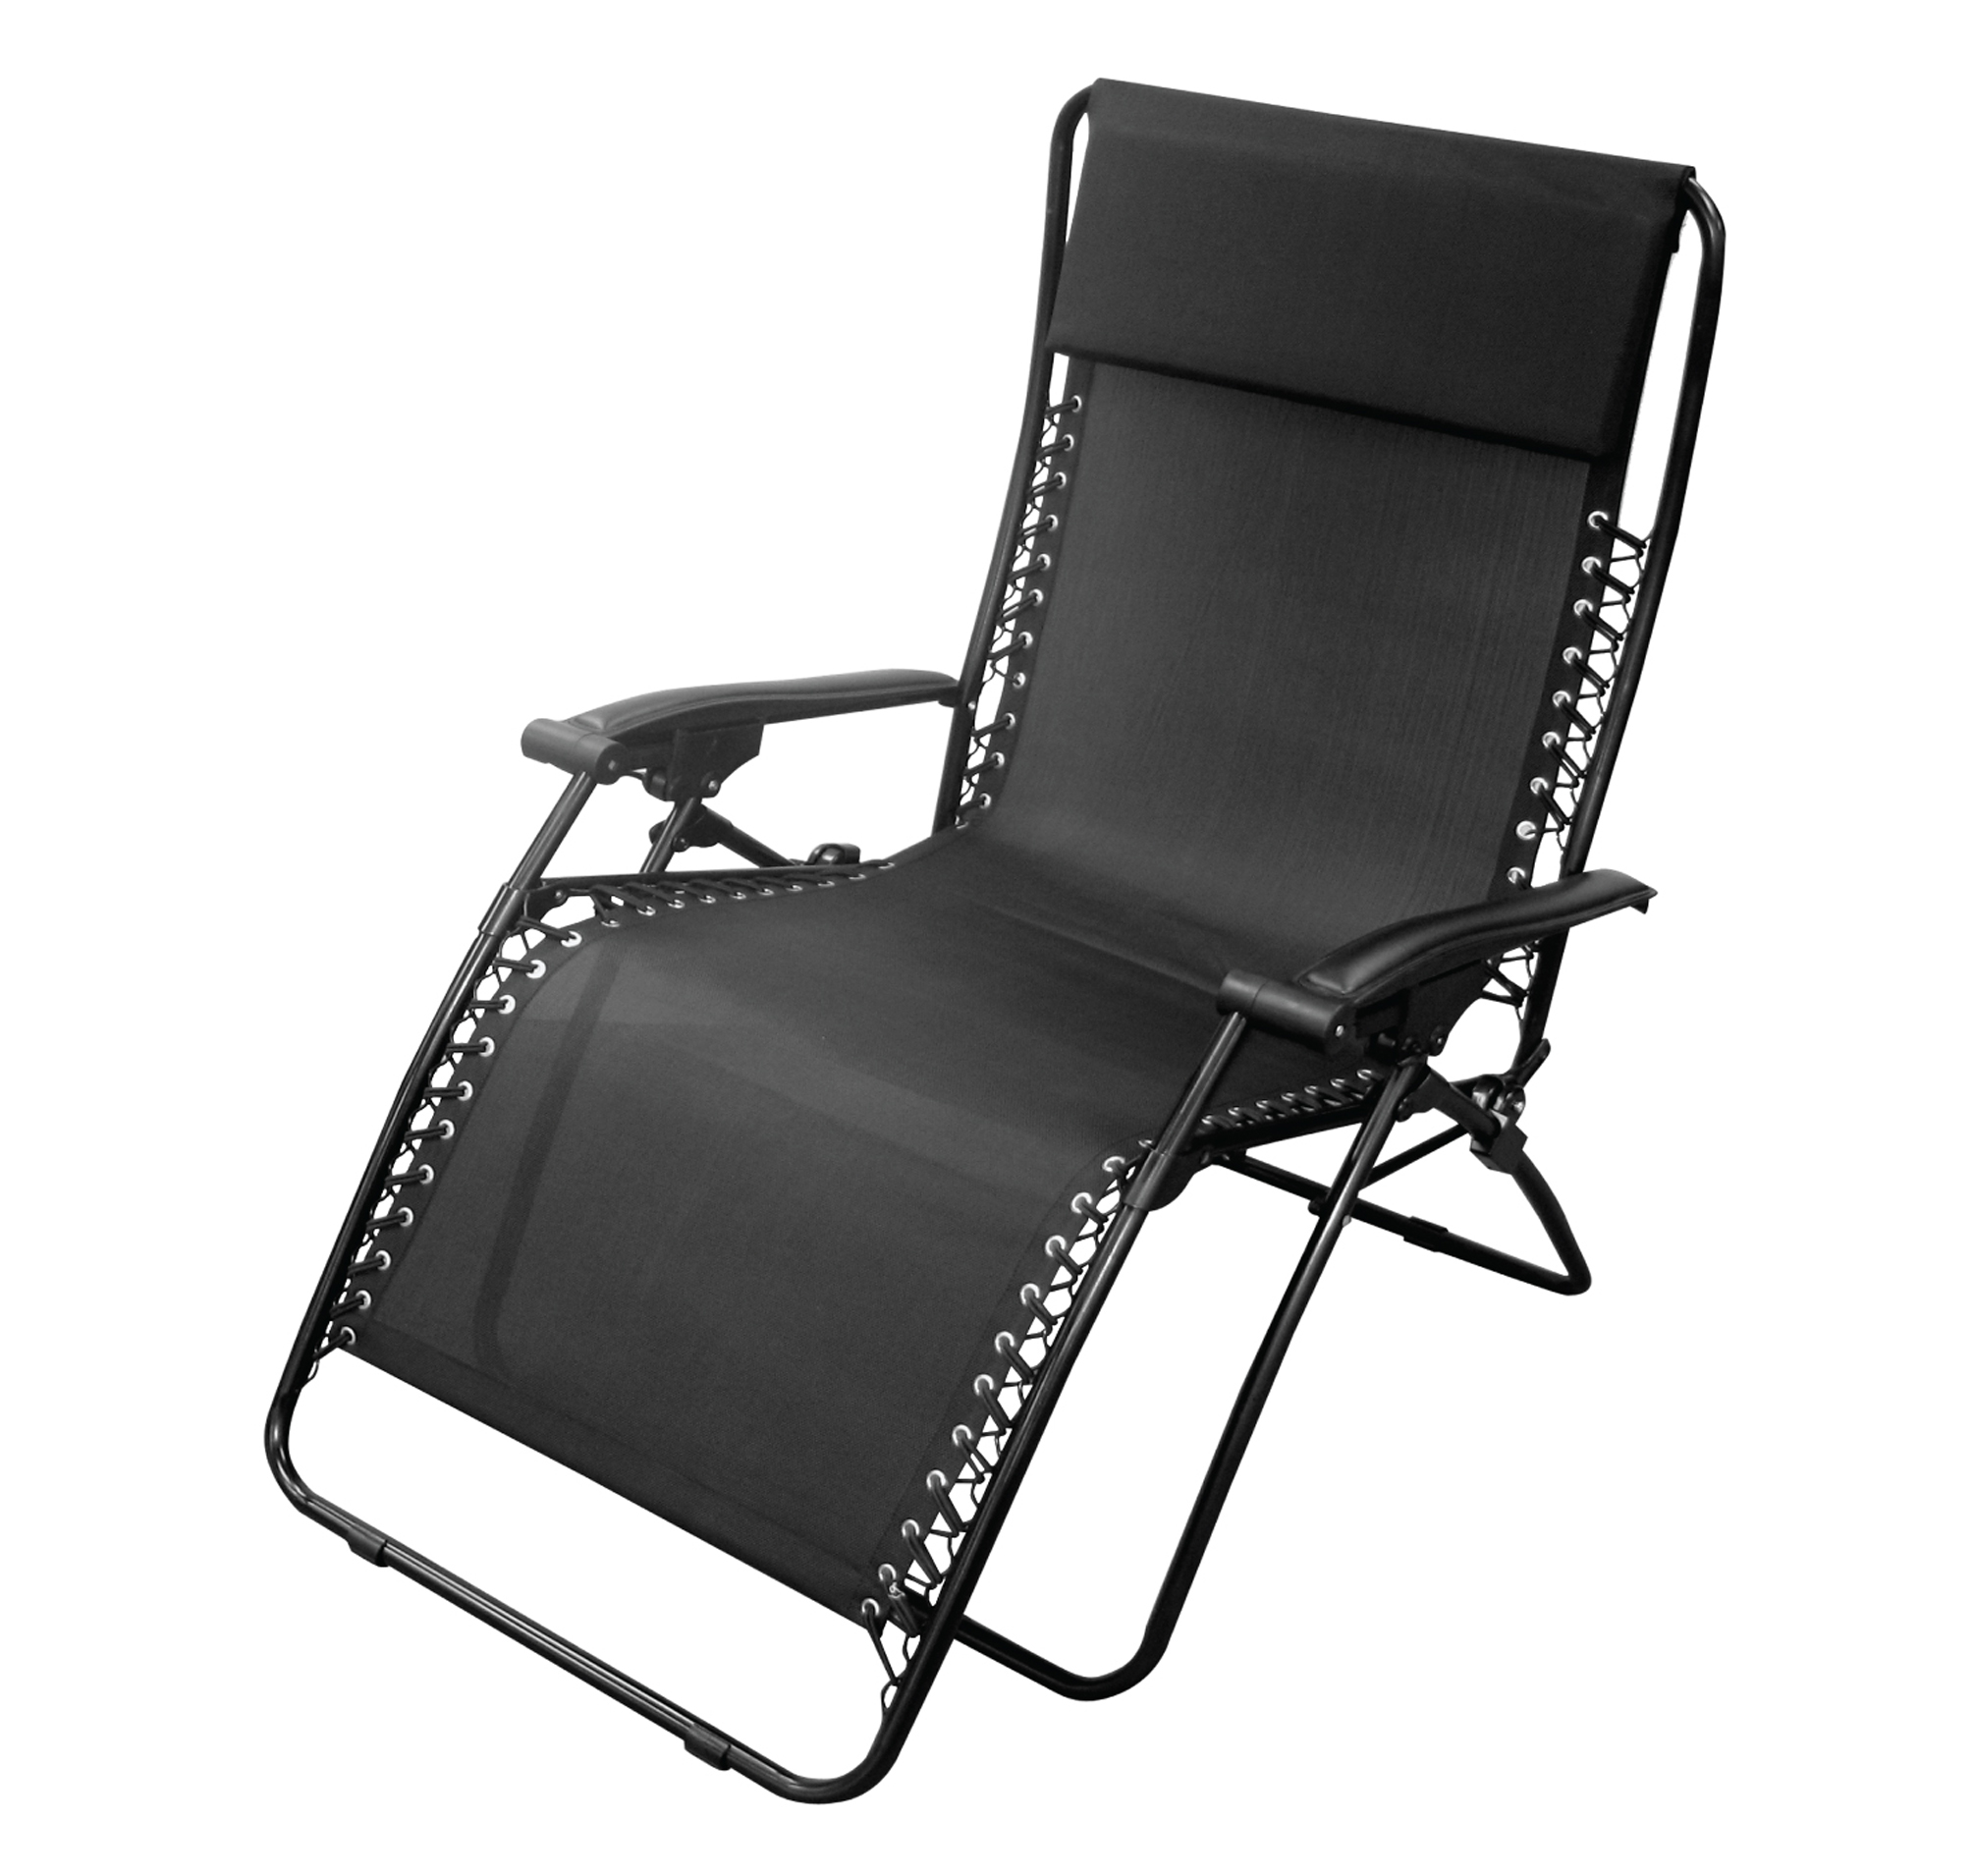 anti gravity lawn chair swing dubai strathwood basics adjustable recliner